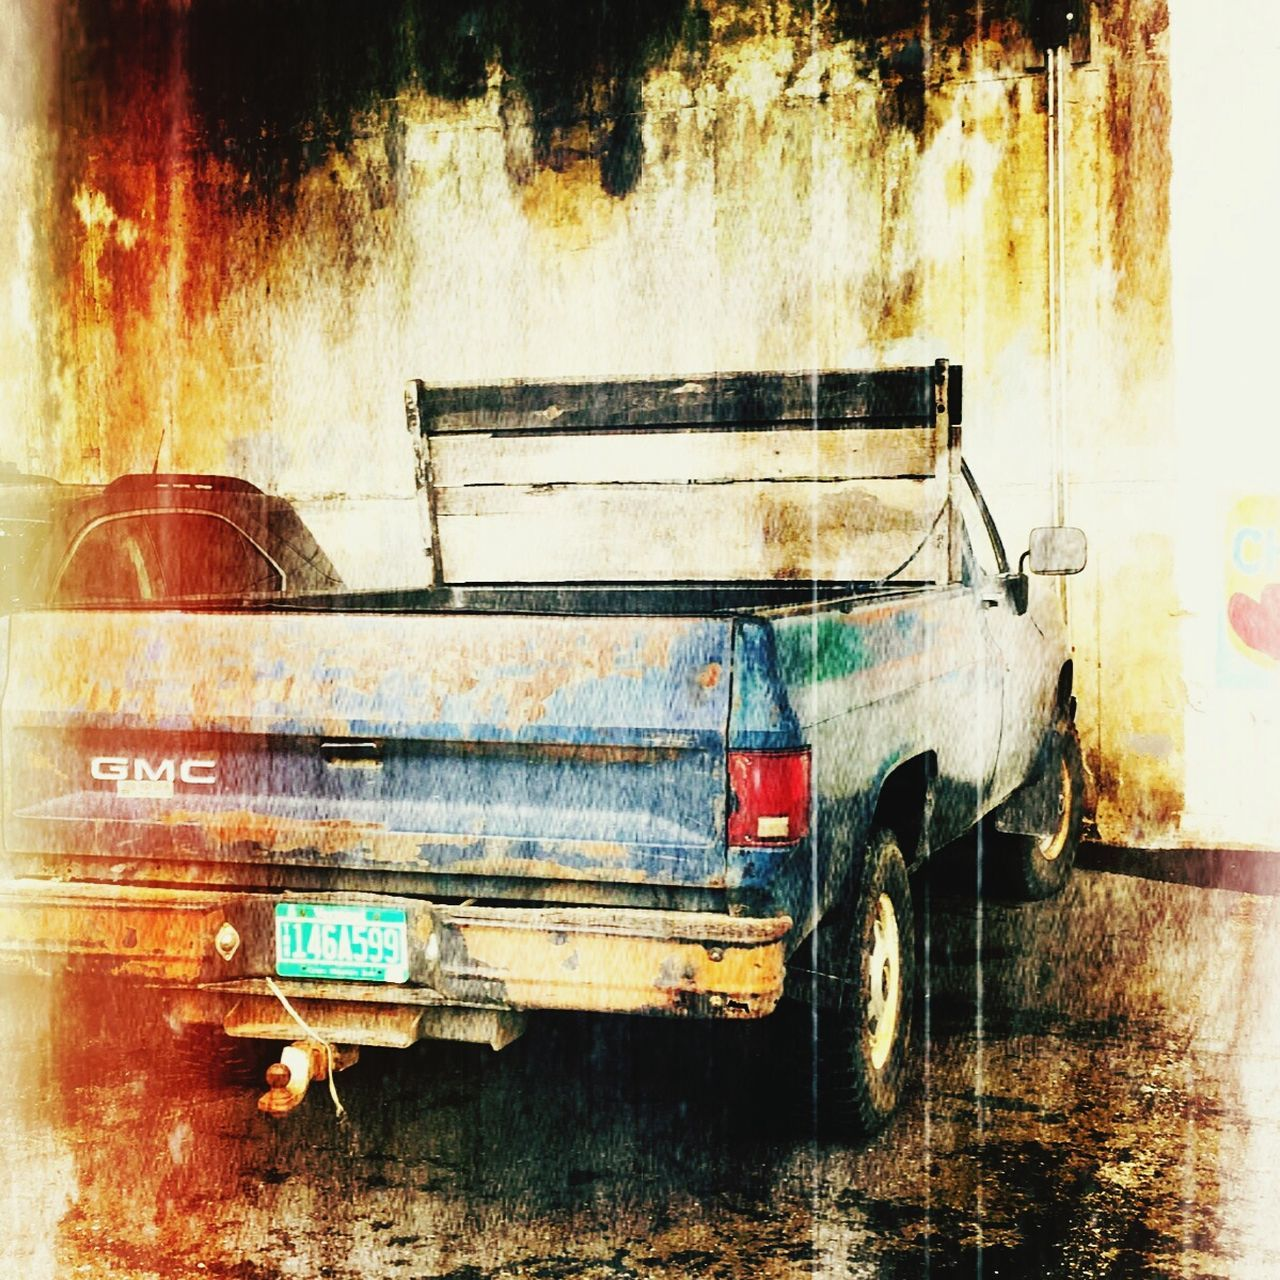 Vintage Truck Transportation Mode Of Transport Land Vehicle No People Wet Outdoors Day Tree Nature Vintage Cars Nostalgic  Trucks Abstract Photography Vintage Style Faded Beauty Worn And Loved  Classic Car Skill  Nostalgic  Vermontphotographer Weathered And Torn Usedlook Truckart Pickup Truck Abstract Art